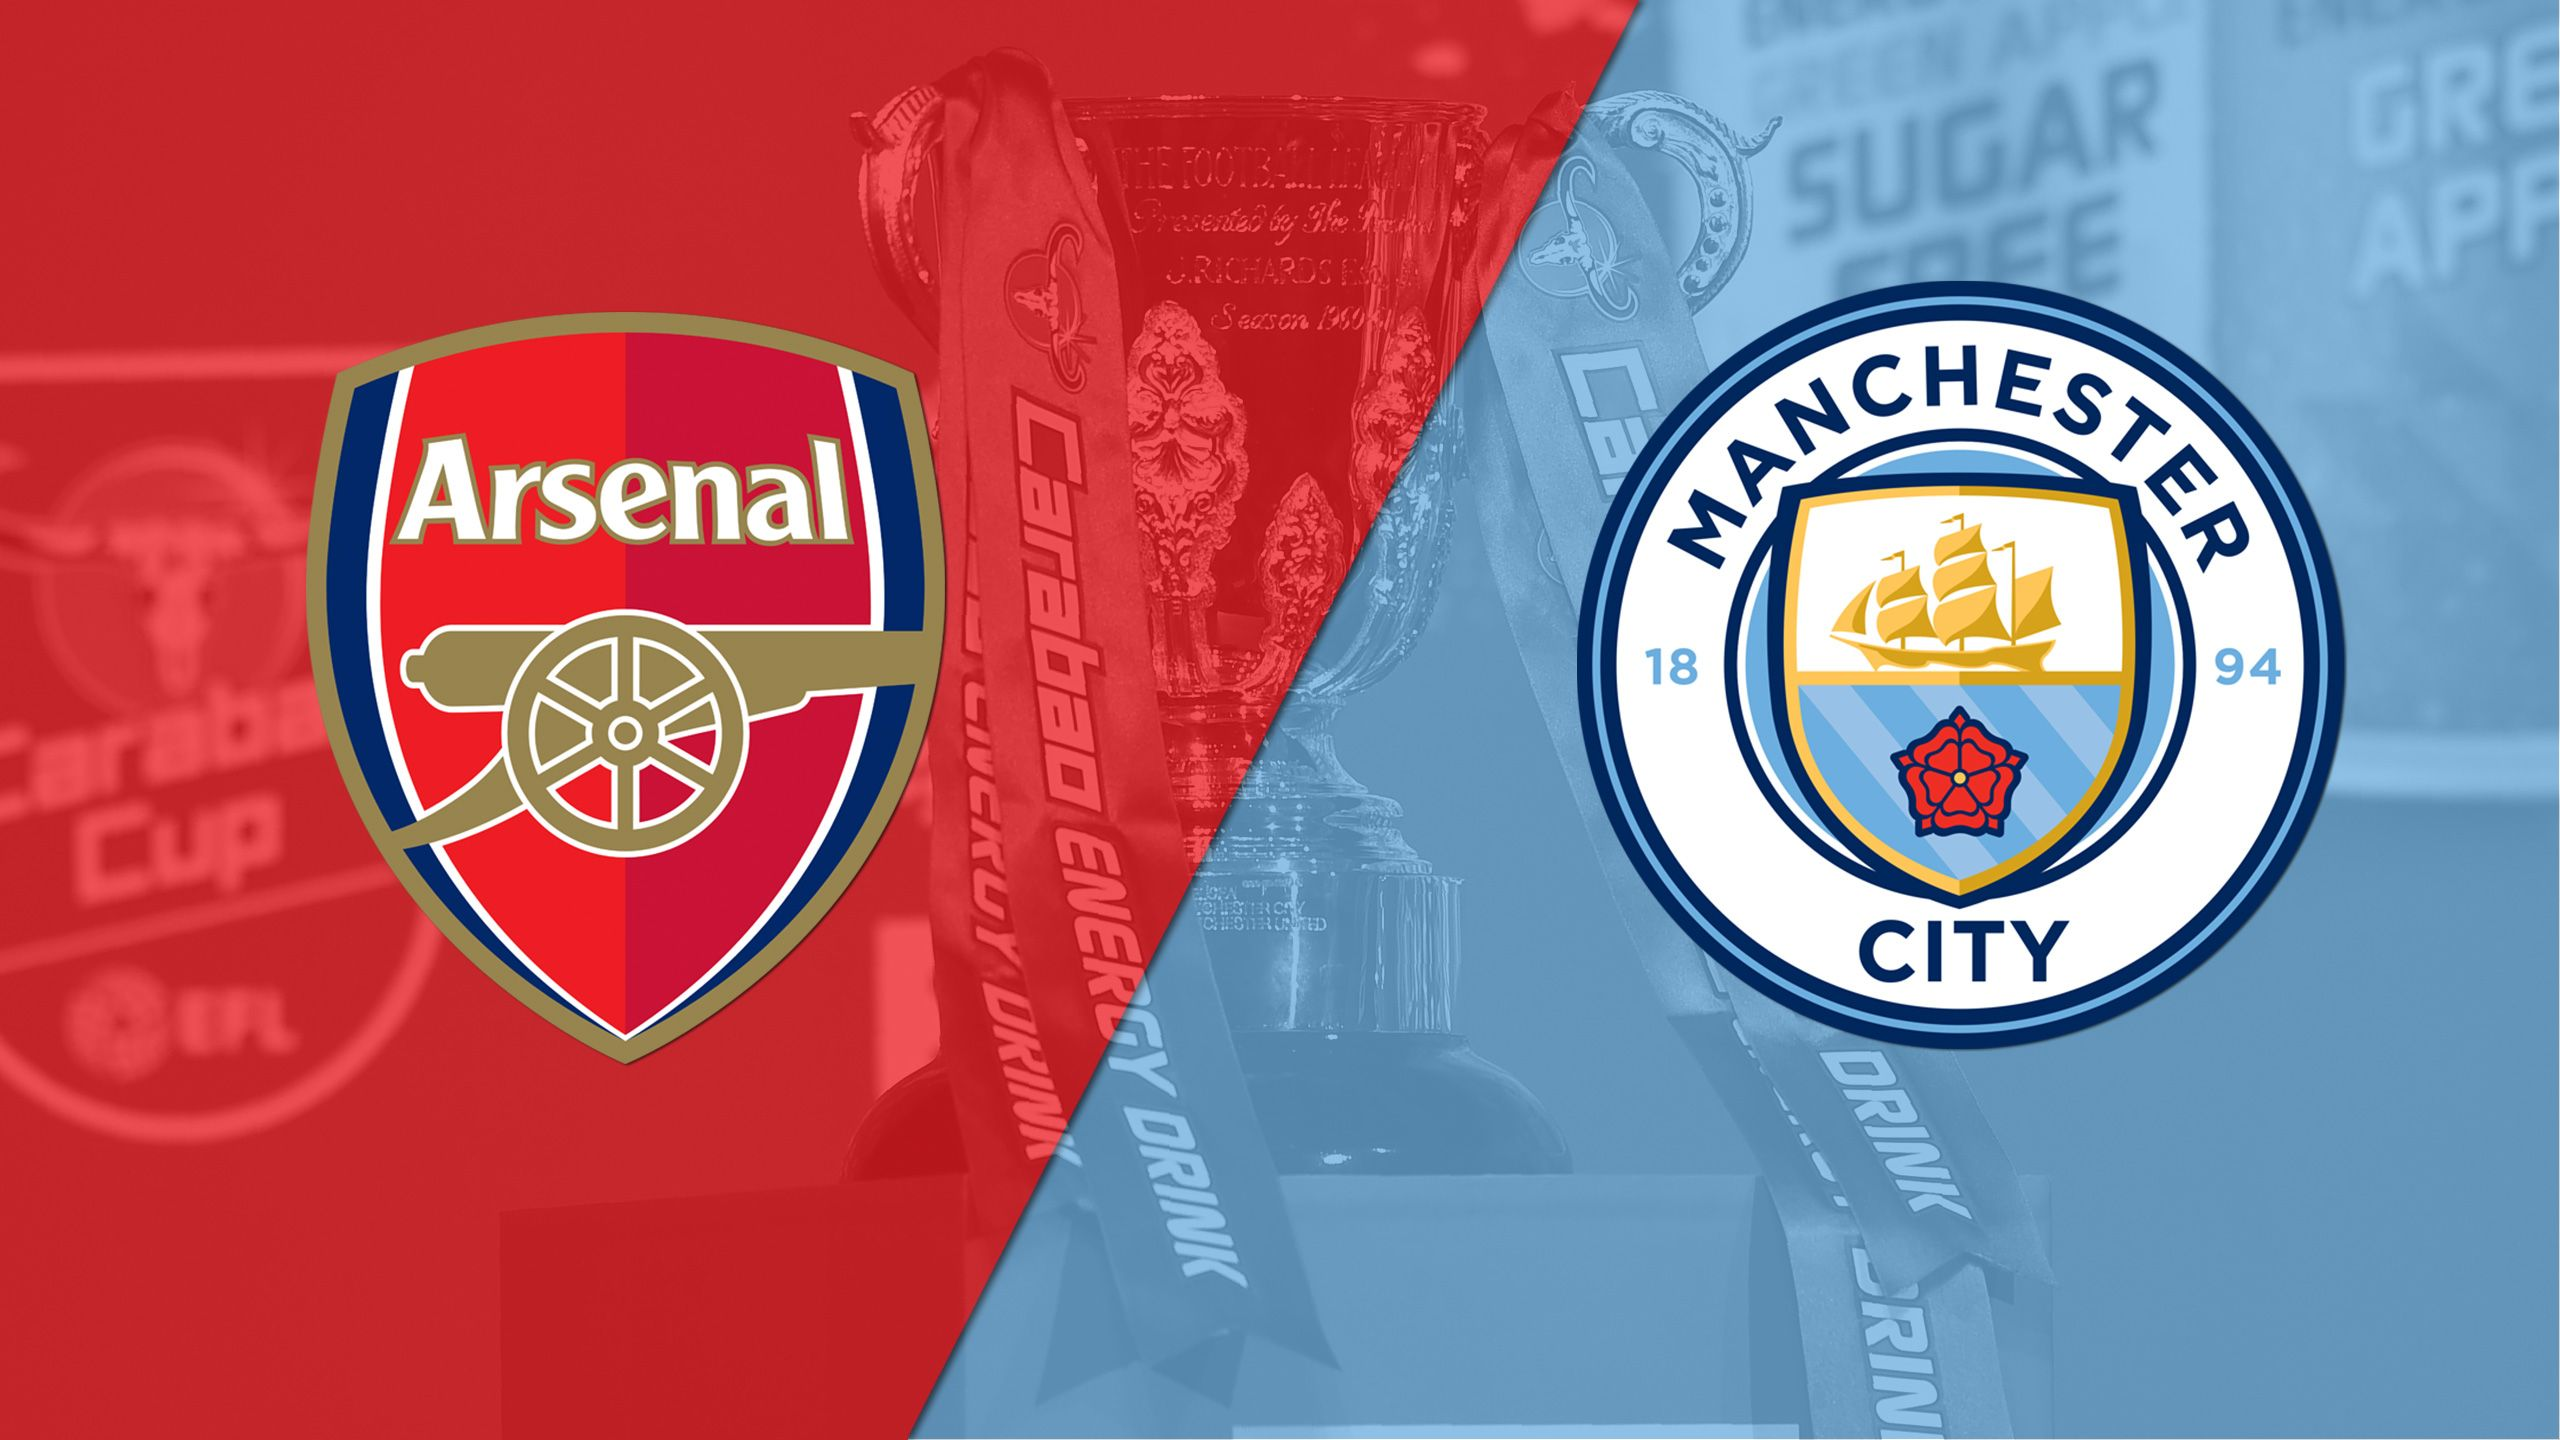 In Spanish - Arsenal vs. Manchester City (Final) (Carabao Cup)